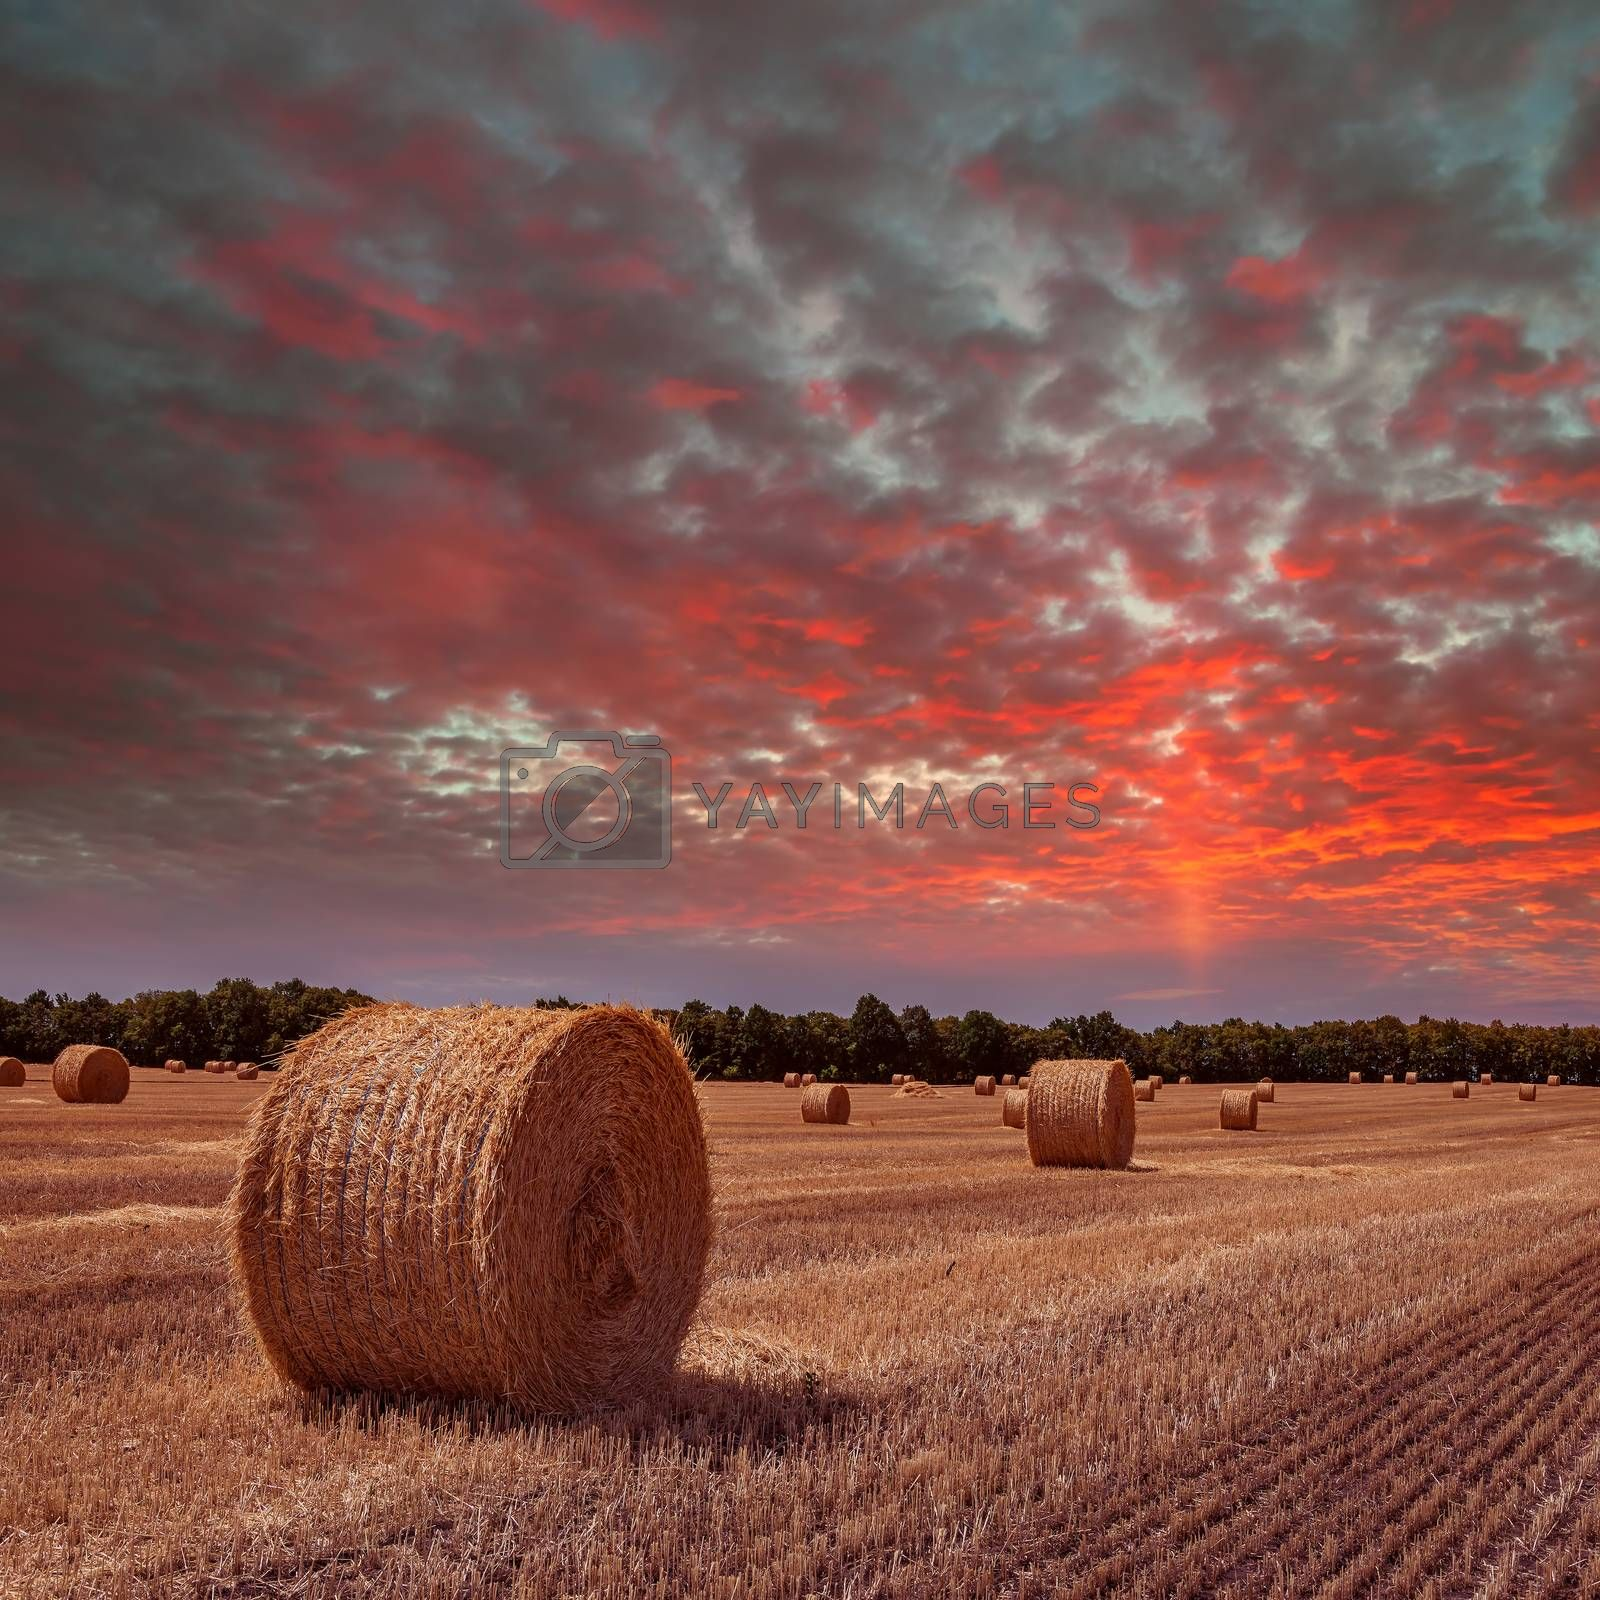 Royalty free image of Field with haystacks on sunset by firewings